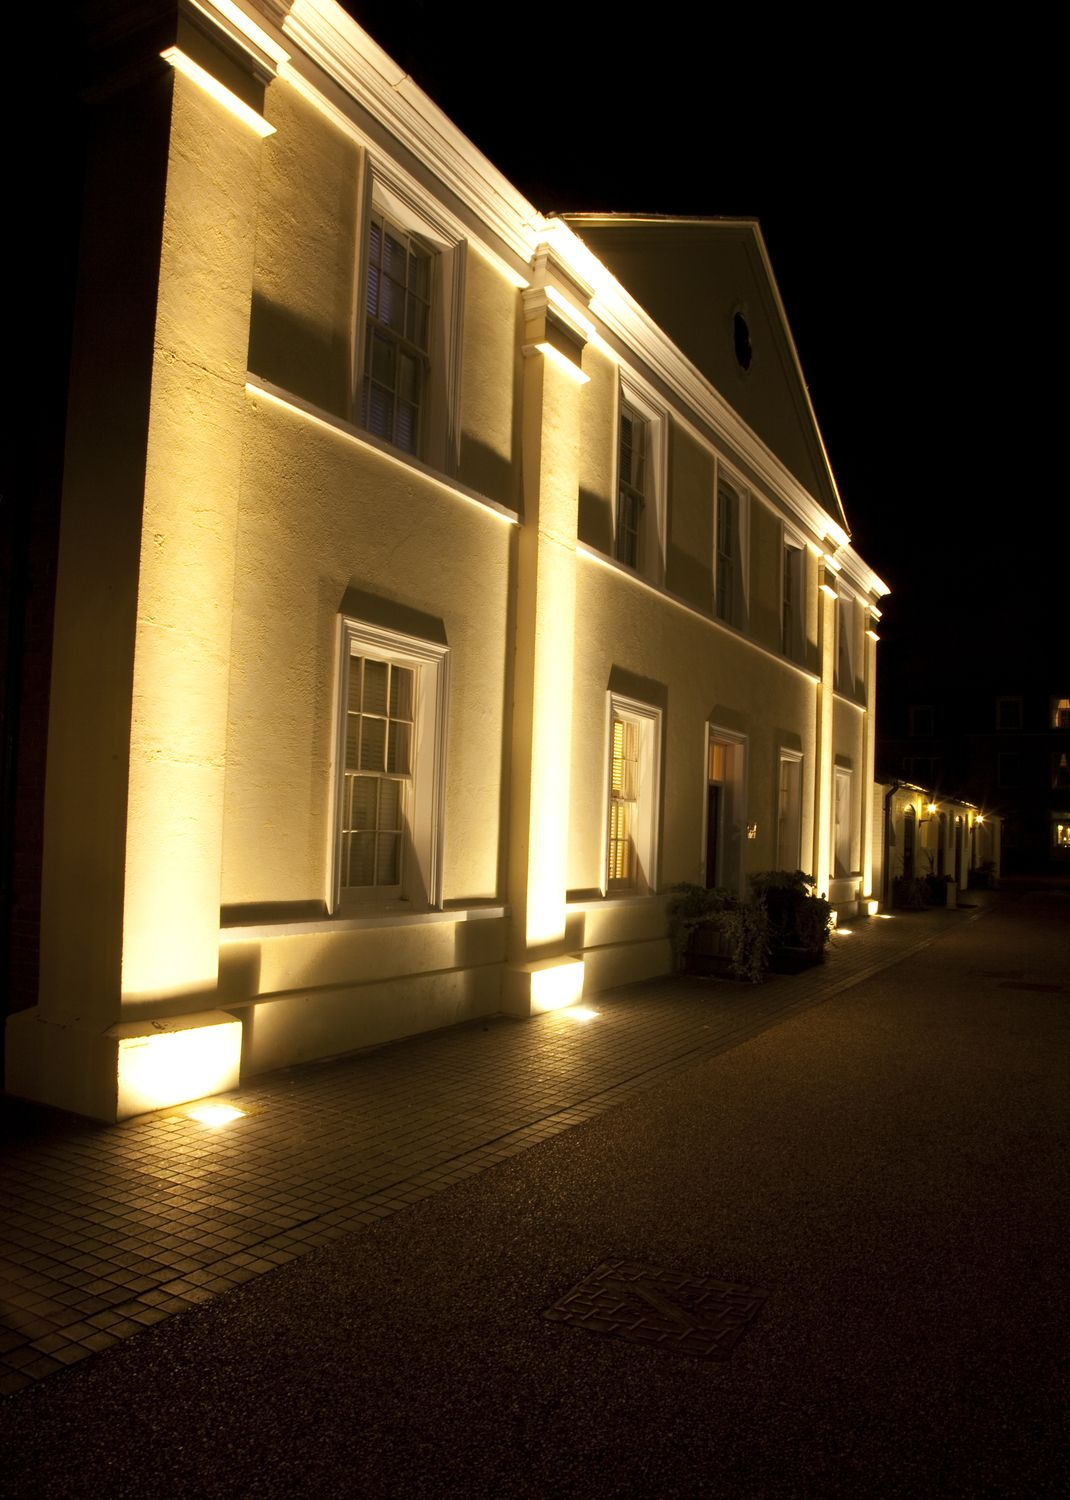 Luton Hoo Hotel Luton Featuring Luca Column Lights House Styles Mansions